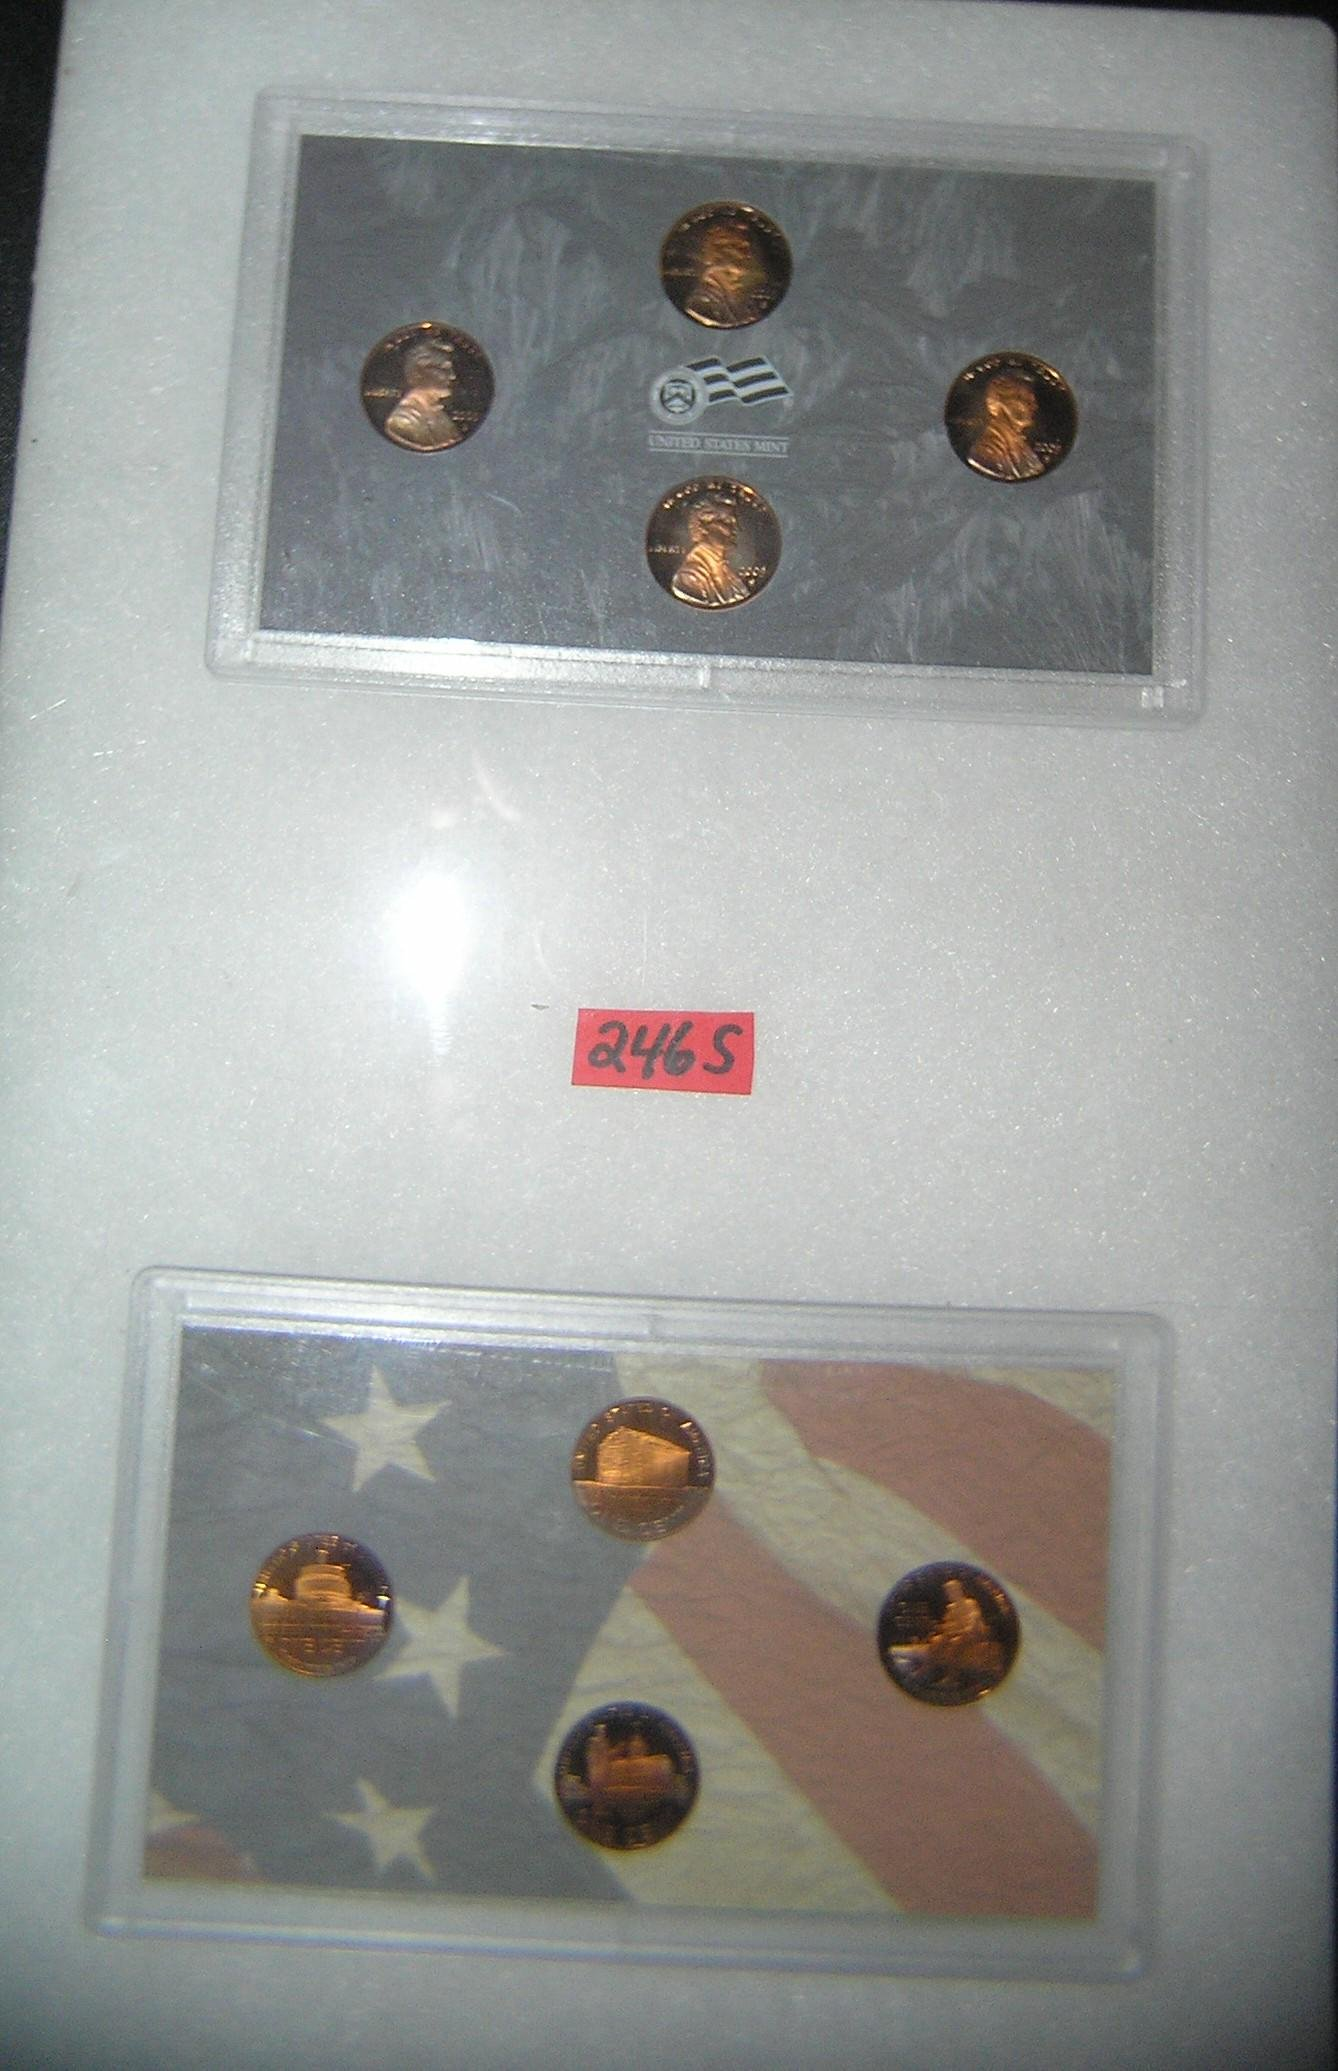 Pair of US mint sets featuring Lincoln pennies